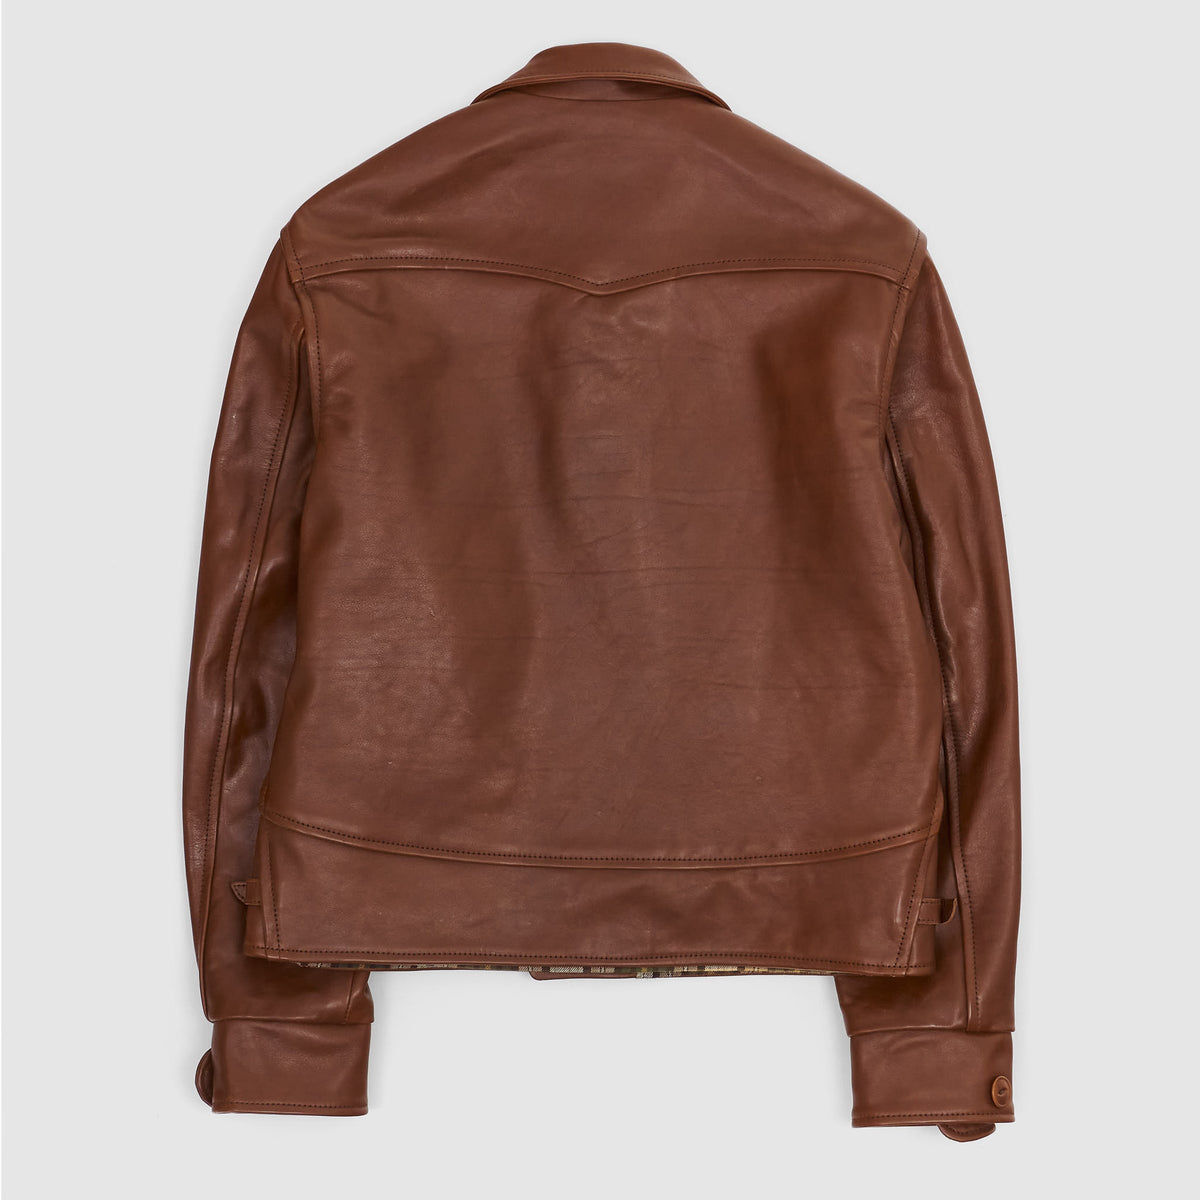 Aero Leathers Aeromarine Leather Jacket